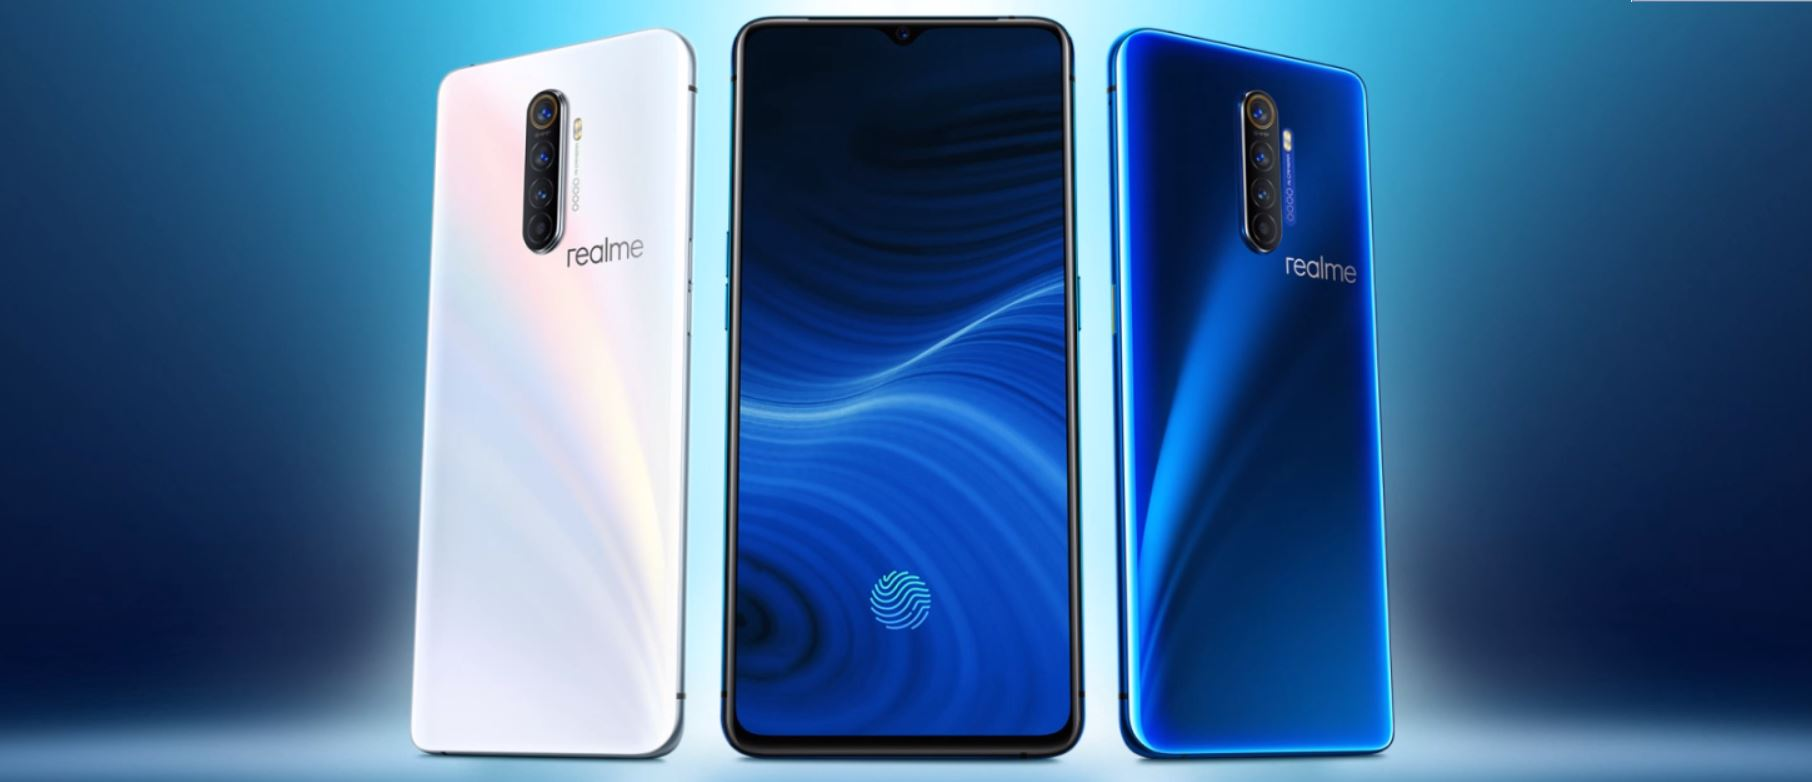 realme-x2-pro-announced-90hz-snapdragon-855-64mp-quad-camera-for-p20k-price-3